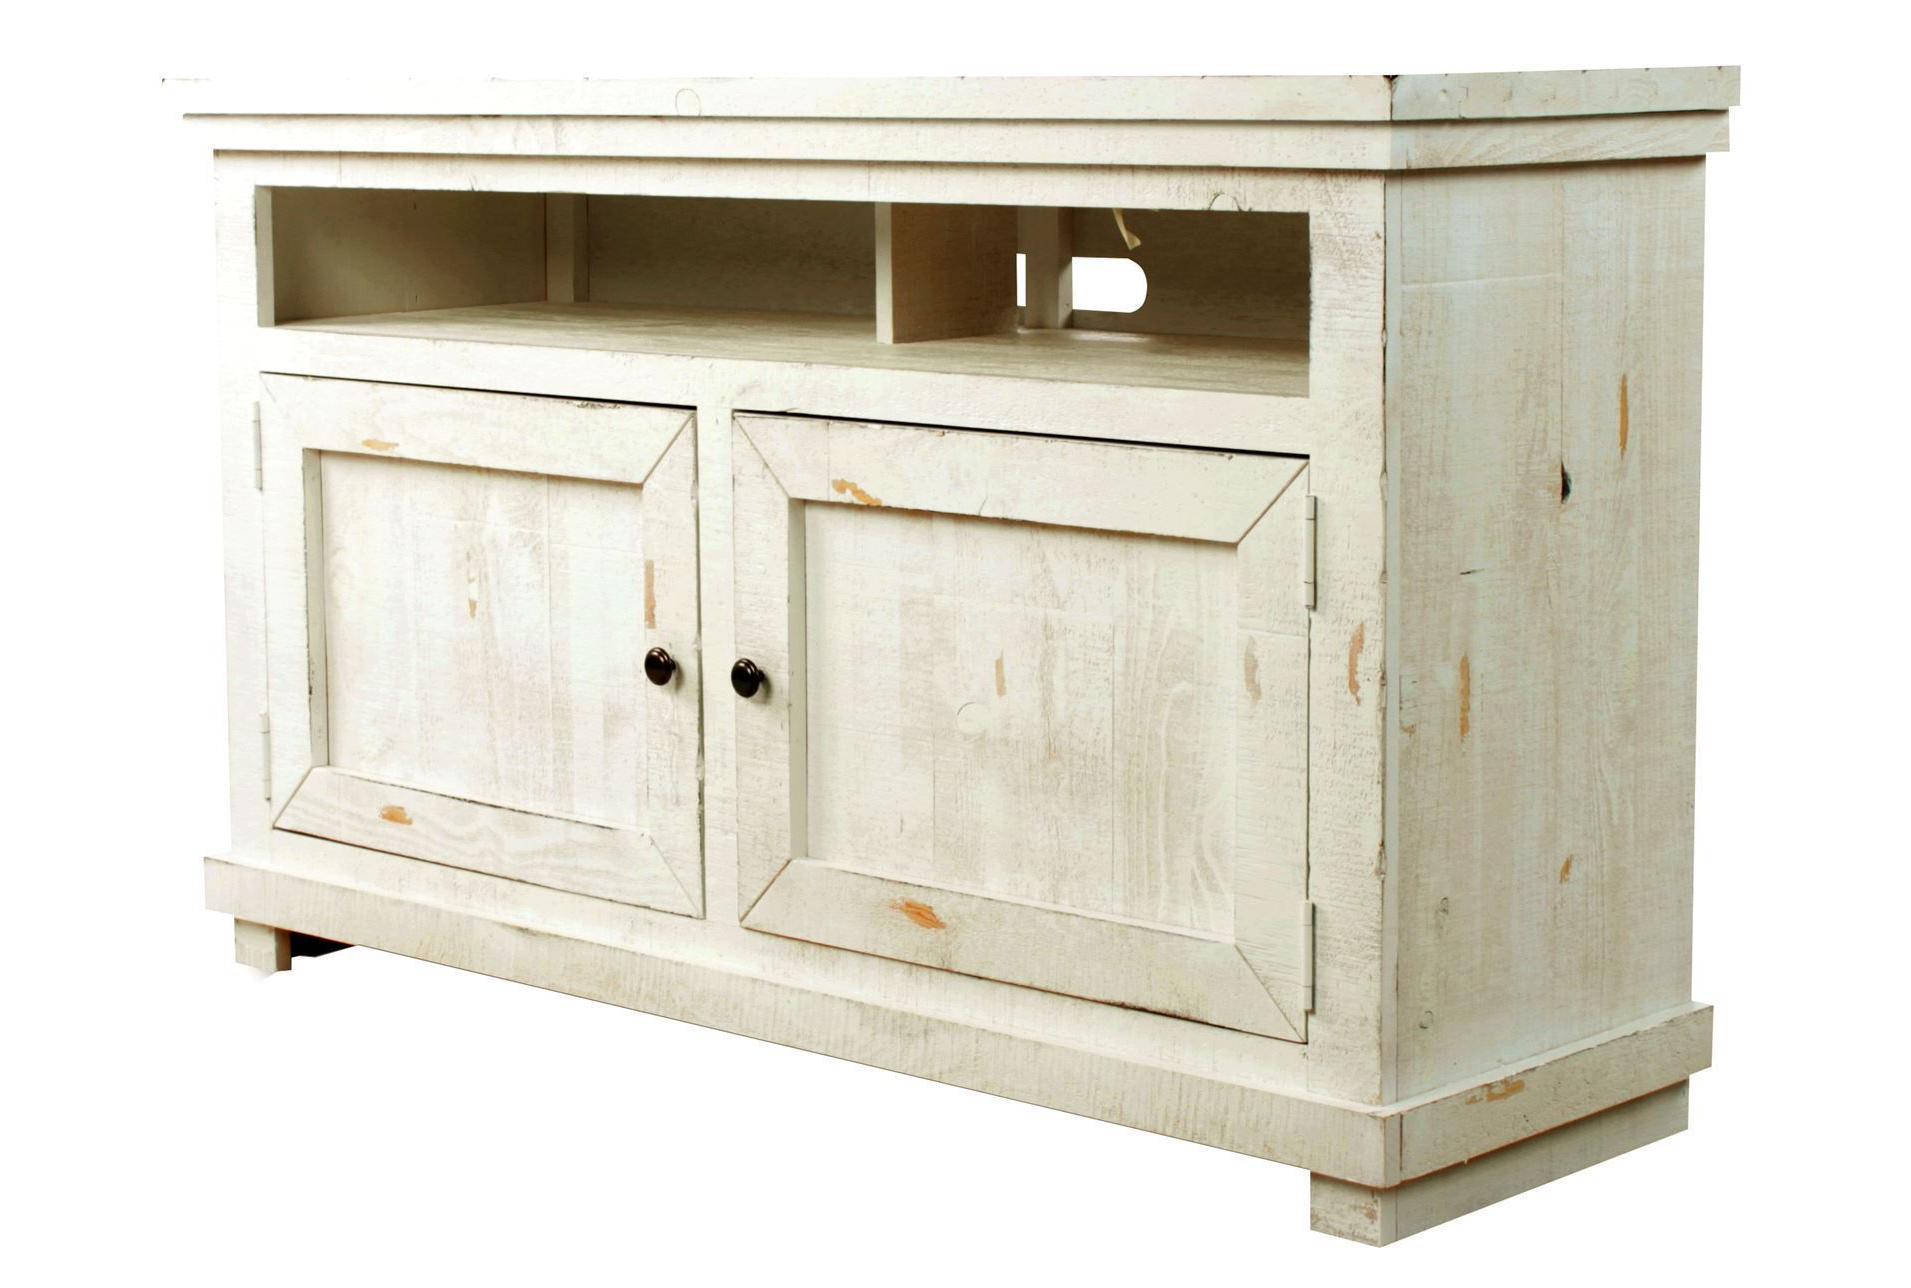 54 Inch Tv Stand, Sinclair White, Weathered White | Consoles, Tv Inside Sinclair White 64 Inch Tv Stands (View 2 of 20)